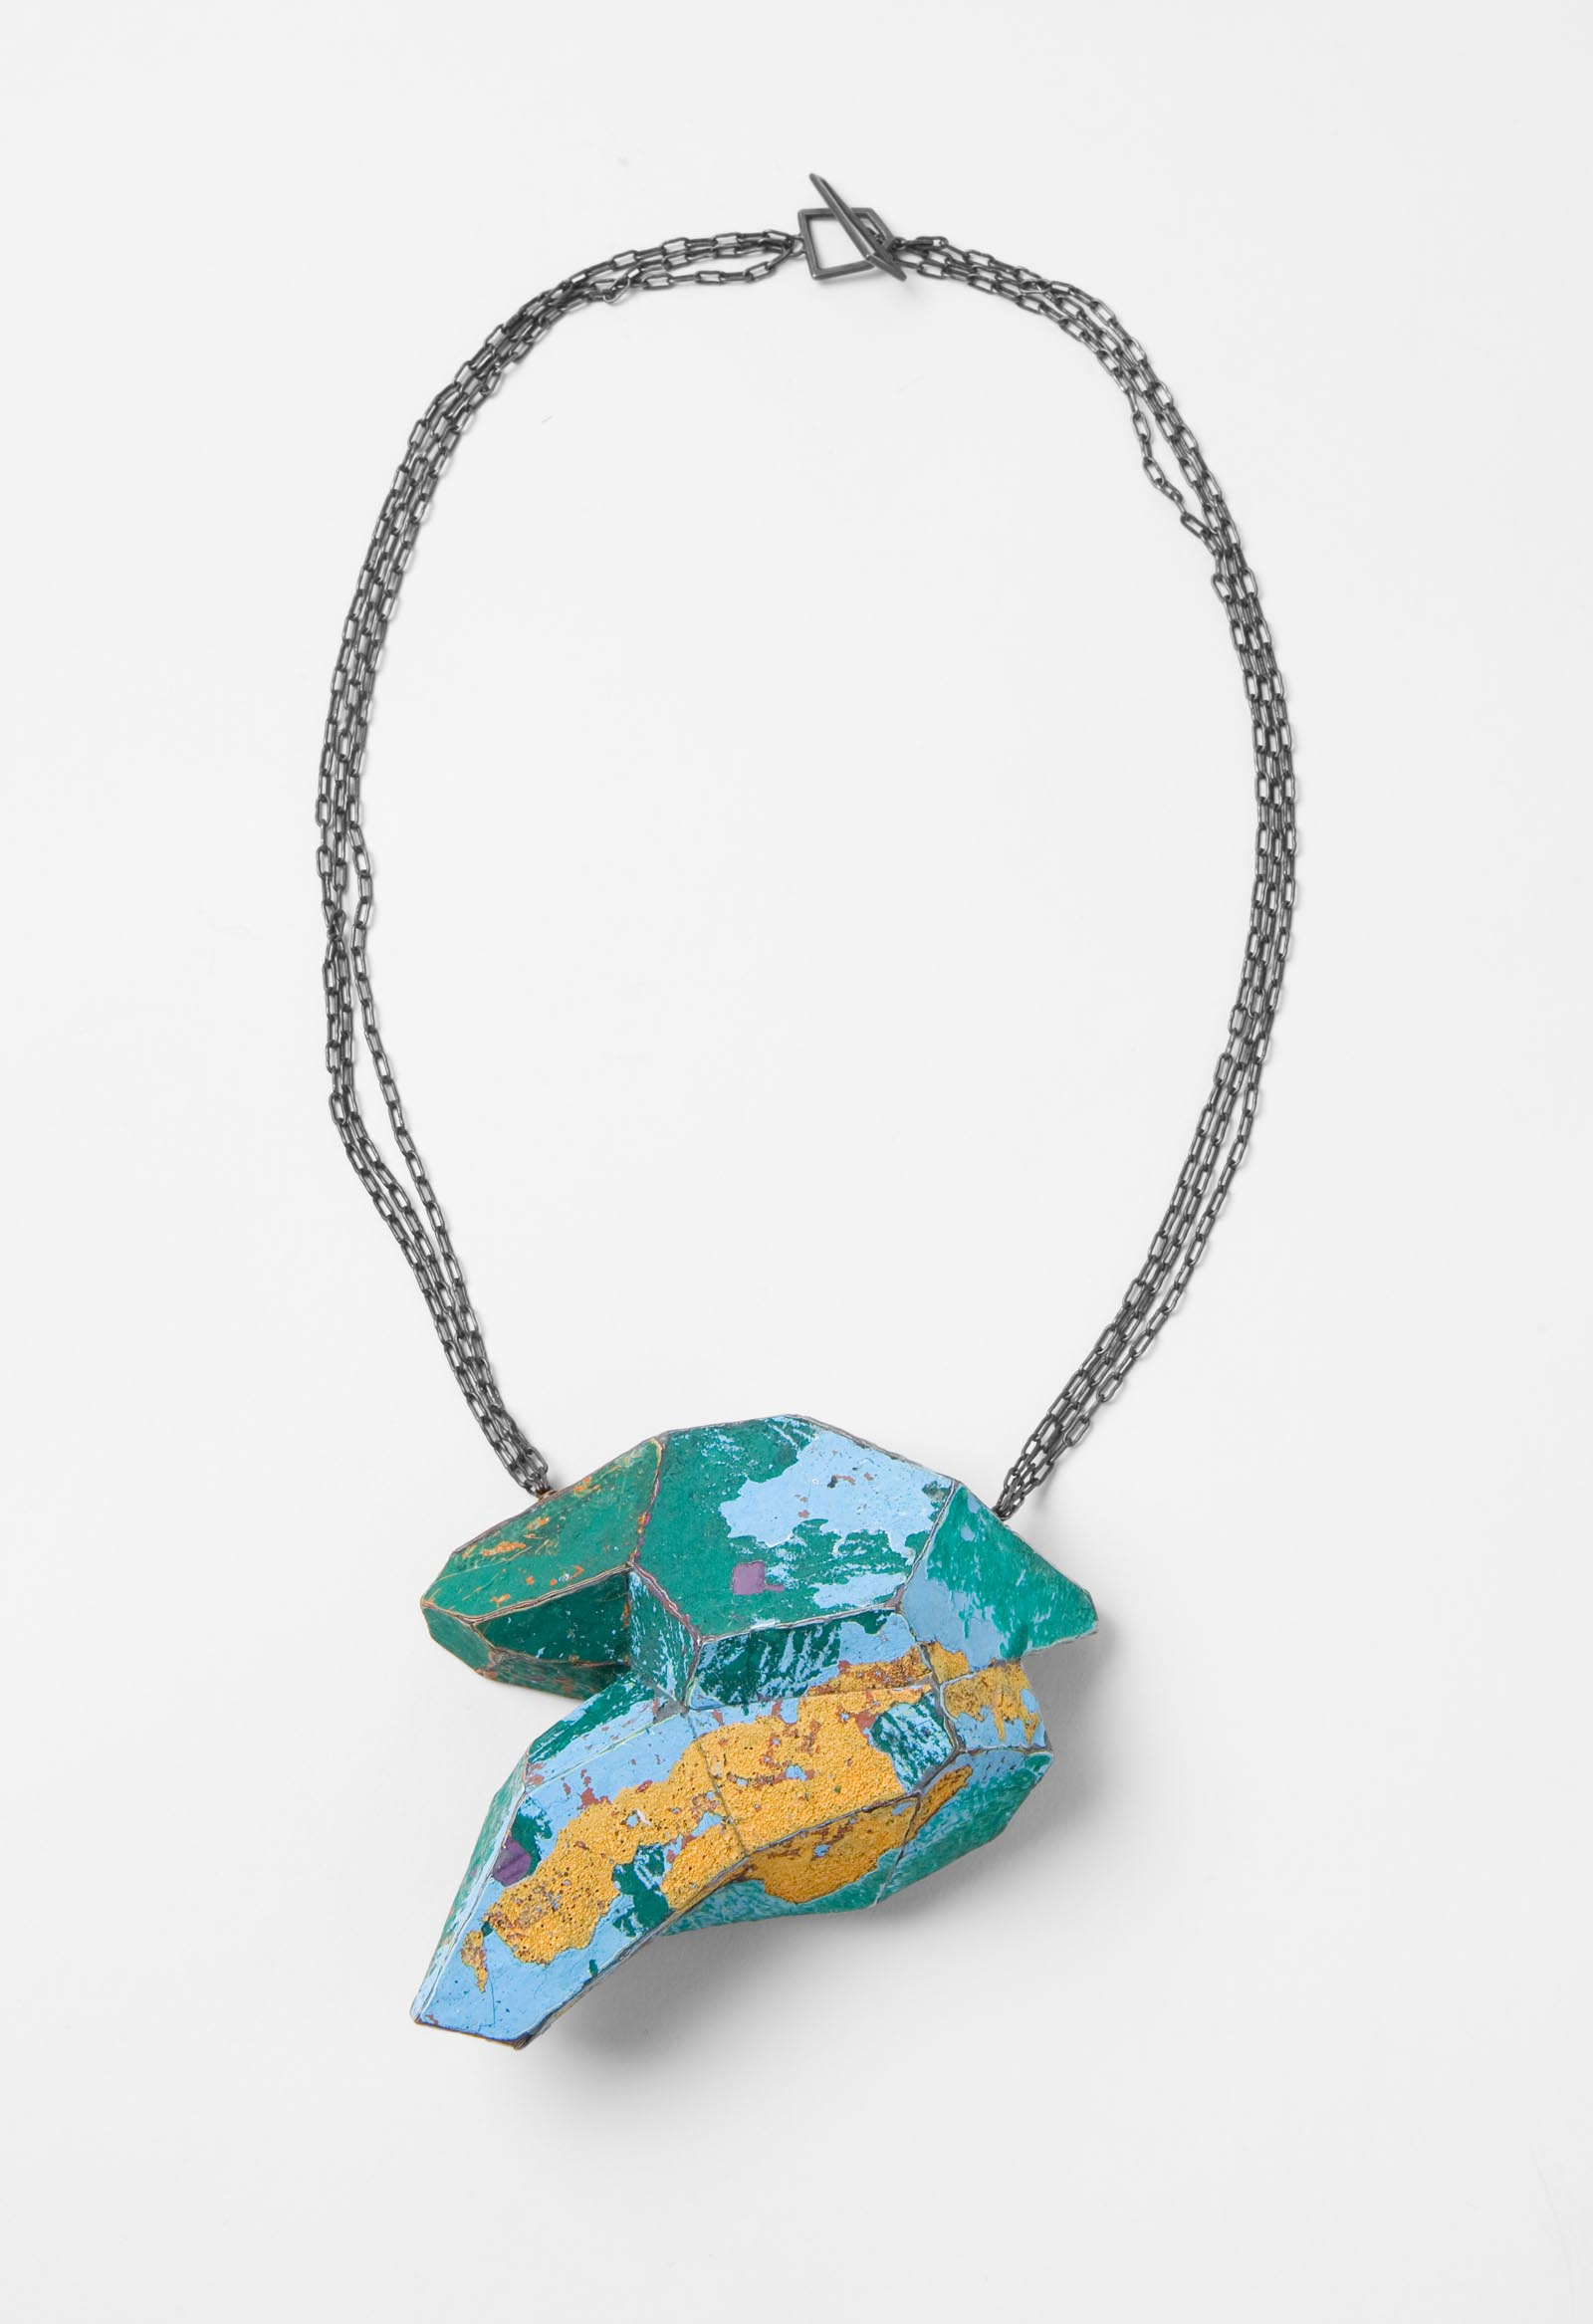 """Orange Islands"" I Necklace, 2013 I Graffiti, silver I Photo: Mirei Takeuchi"